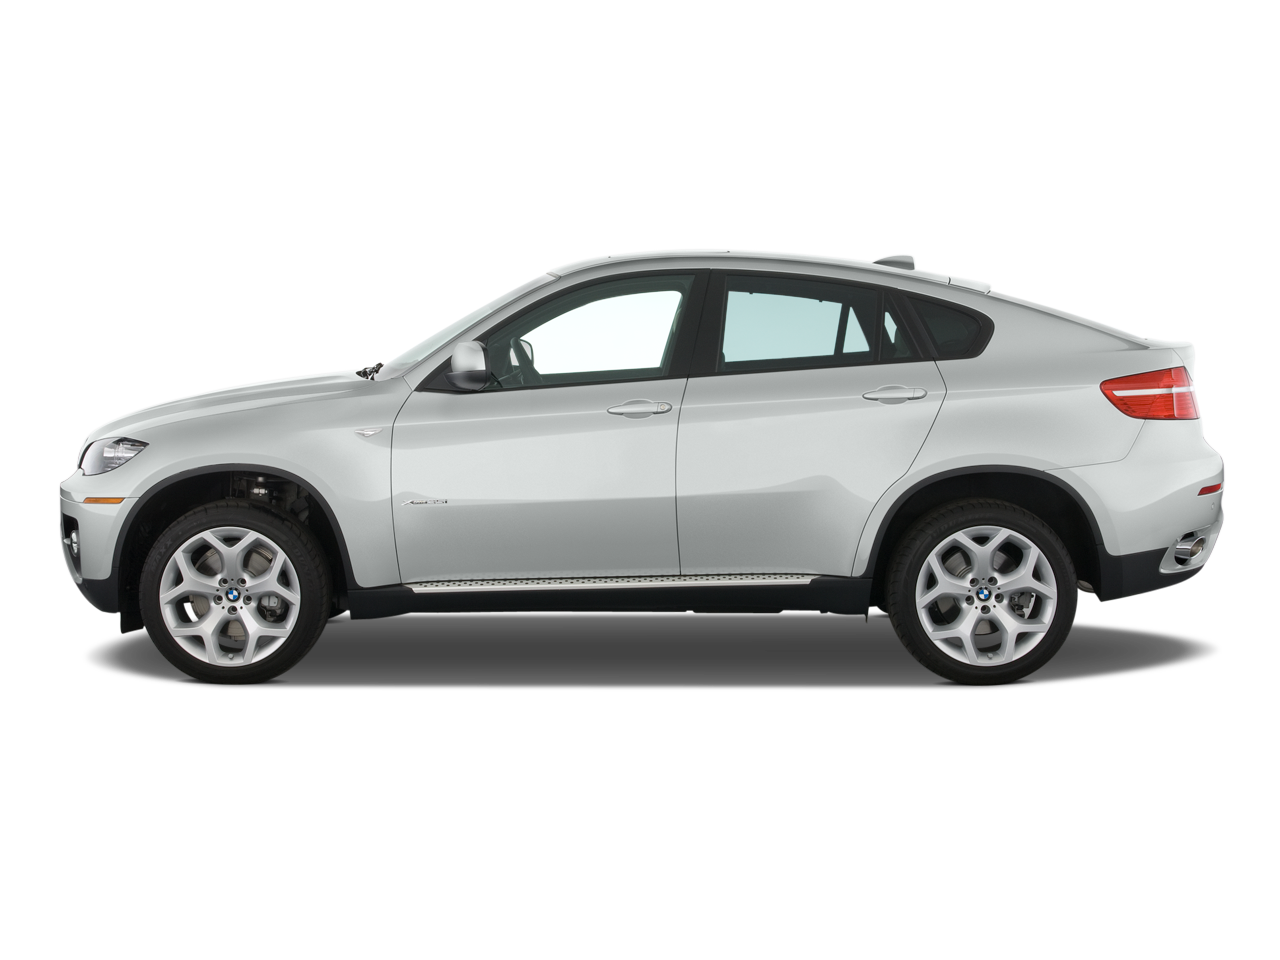 2009 Bmw X6 Xdrive35i Bmw Crossover Coupe Review